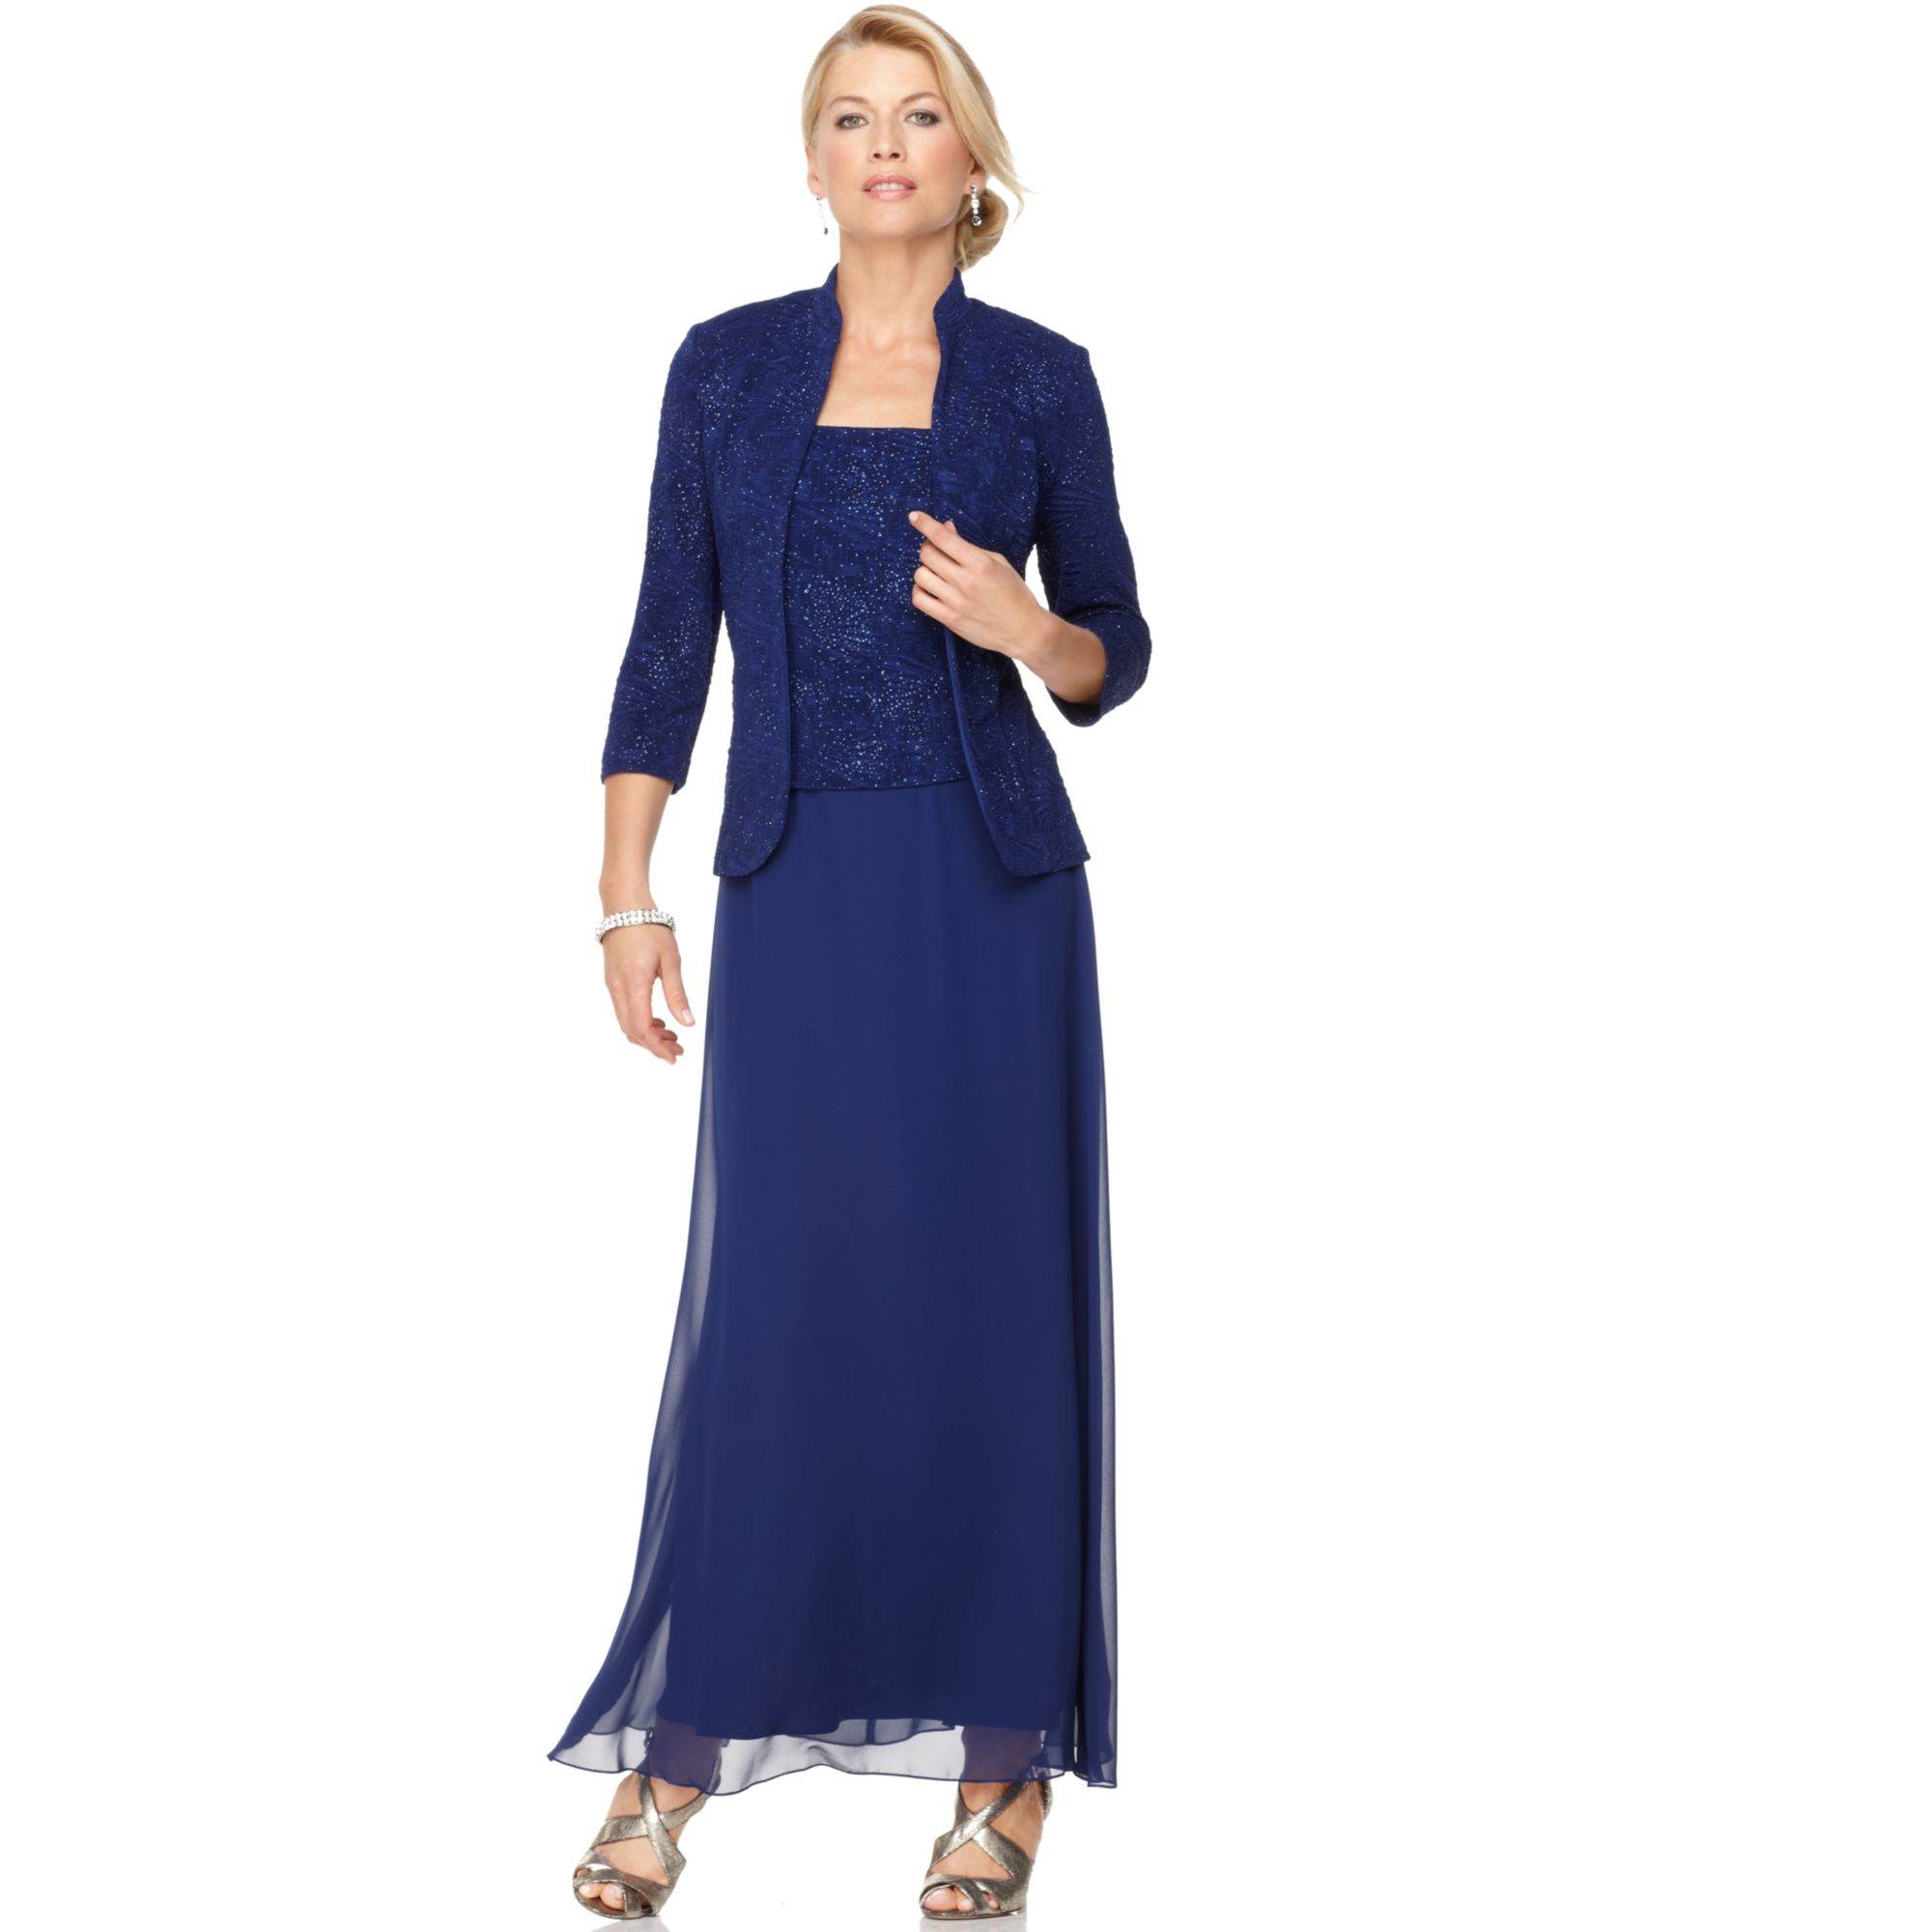 Alex Evenings Sleeveless Jacquard Sparkle Gown And Jacket In Blue